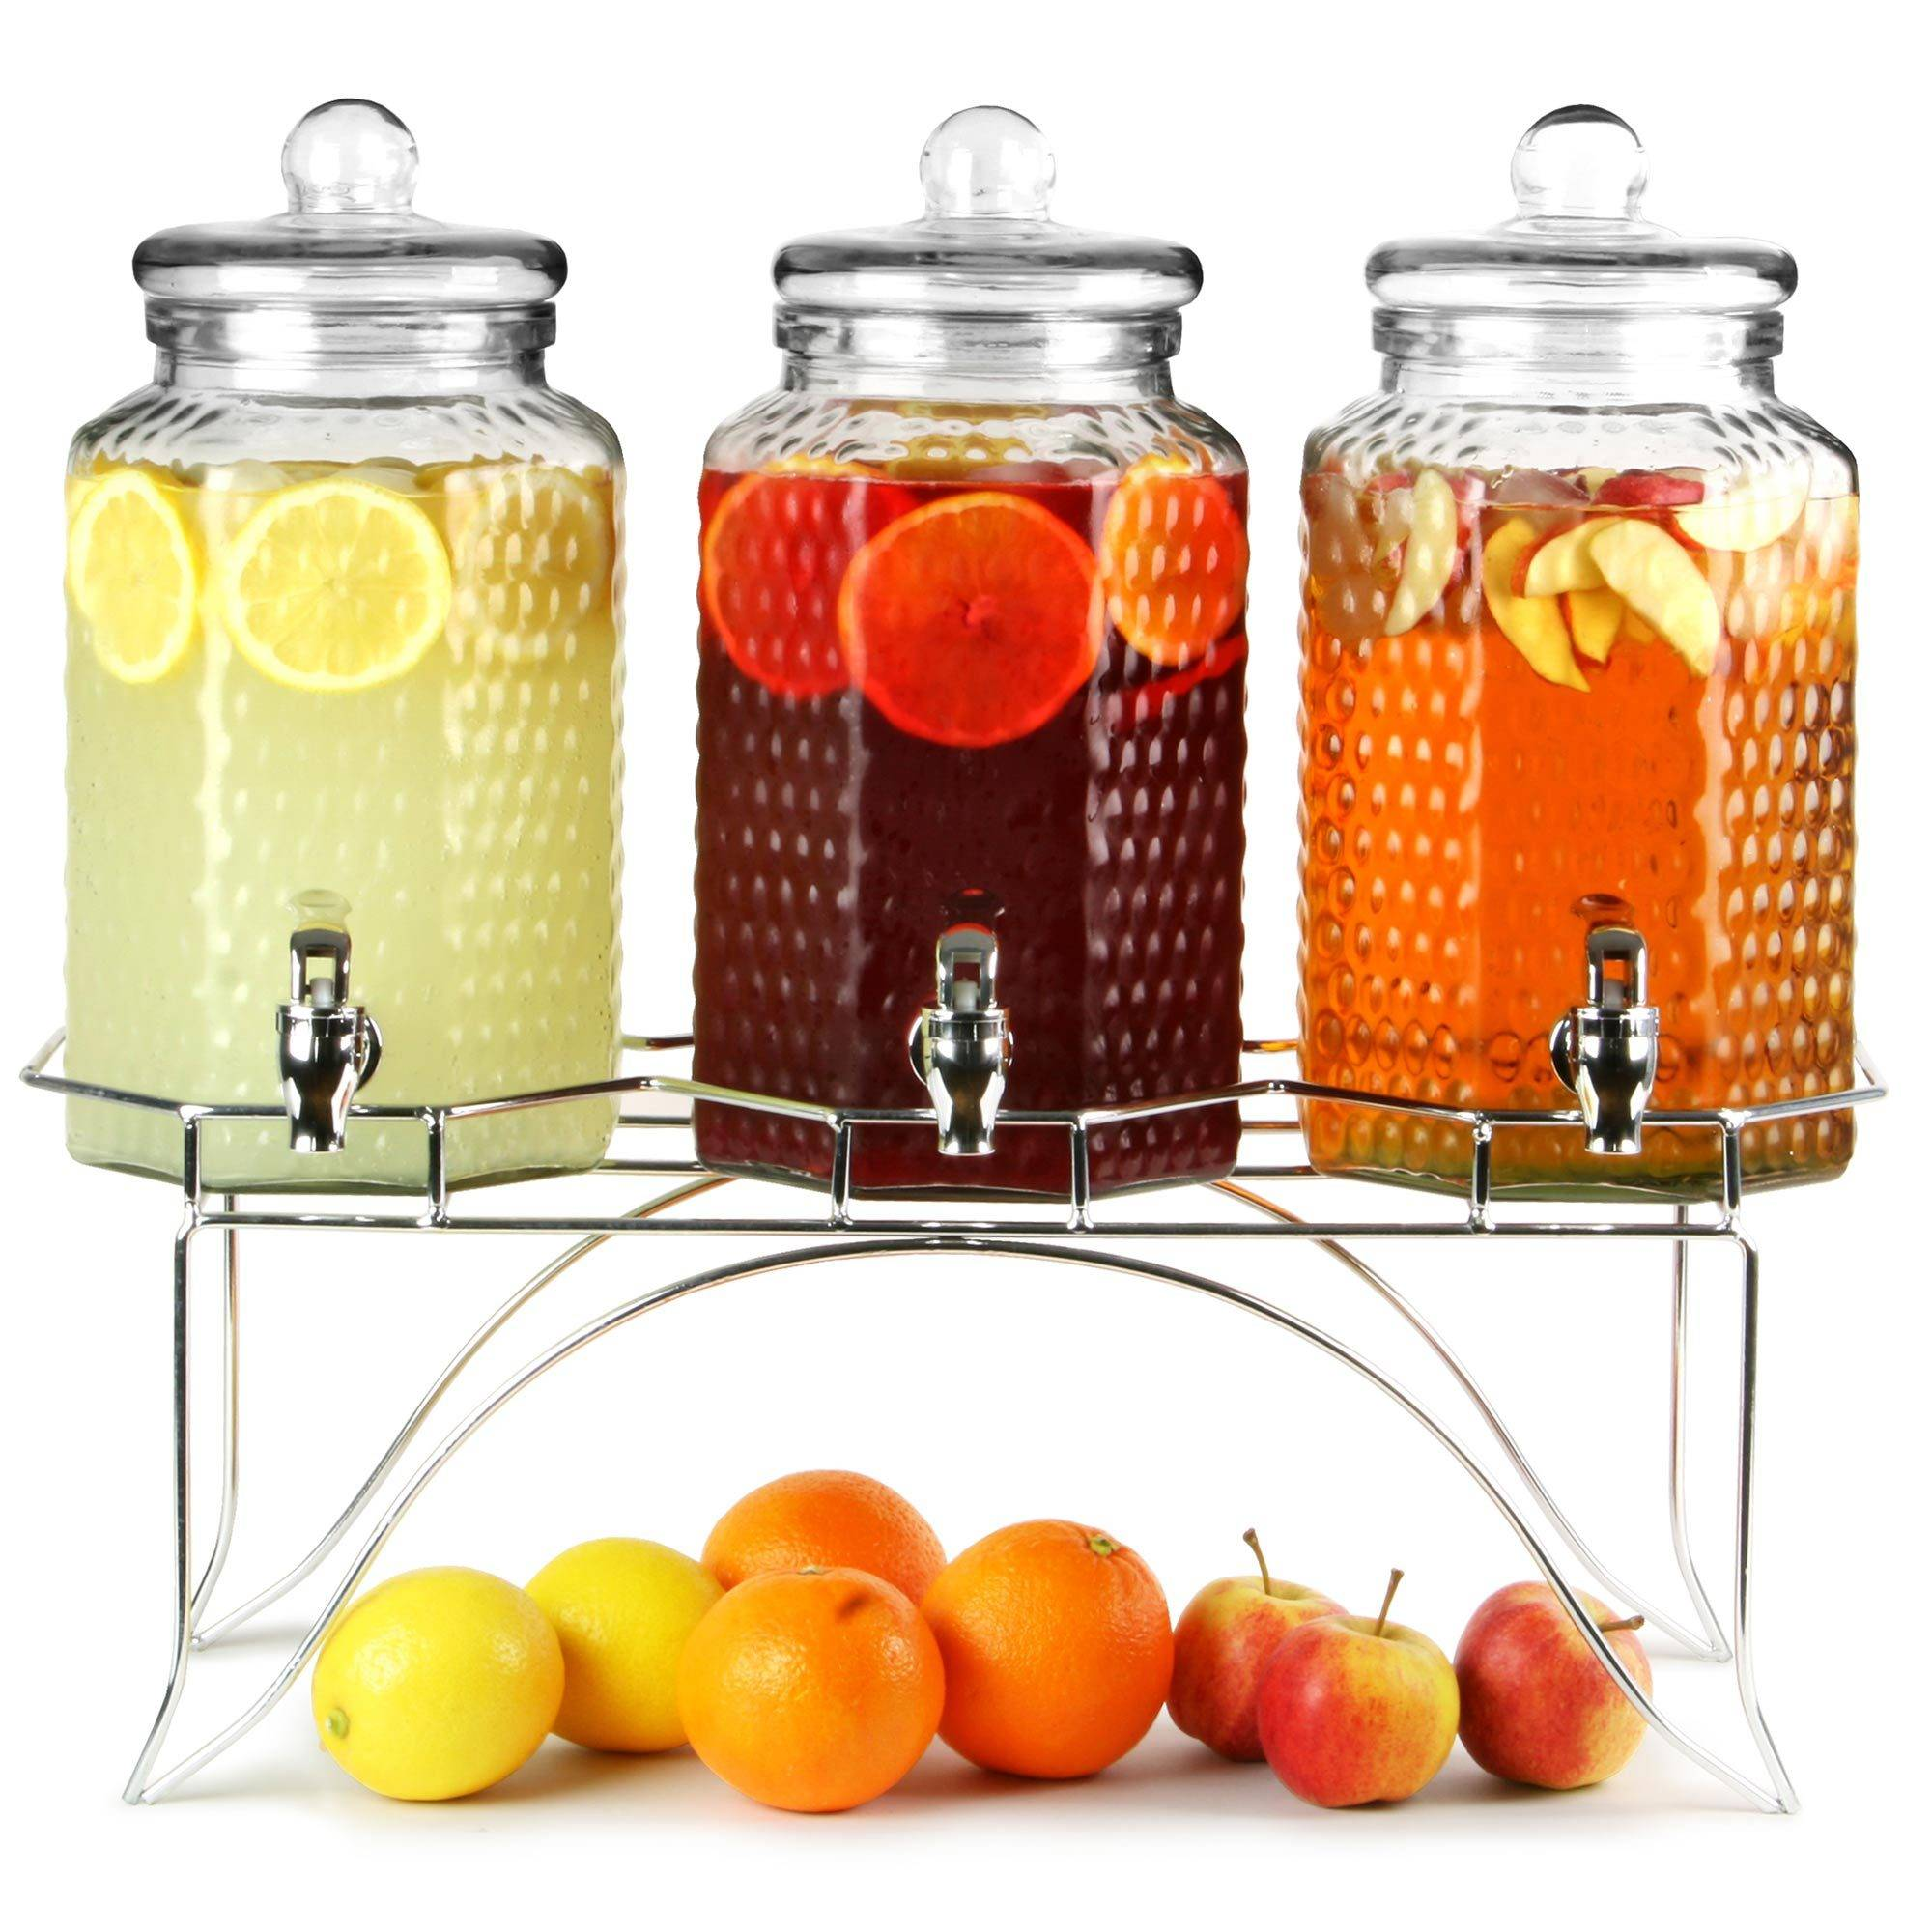 Infused drink dispensers